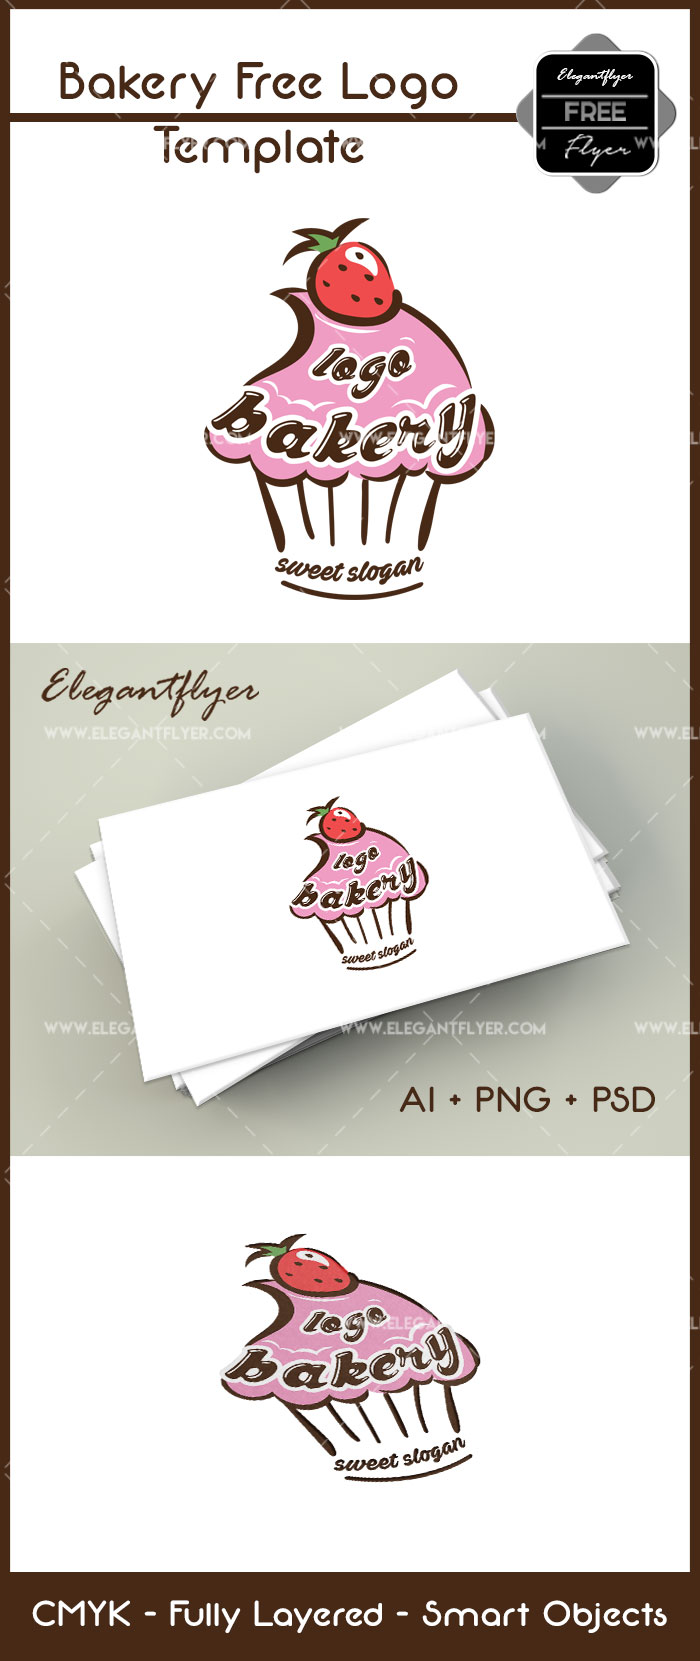 Bakery – Free Logo Template